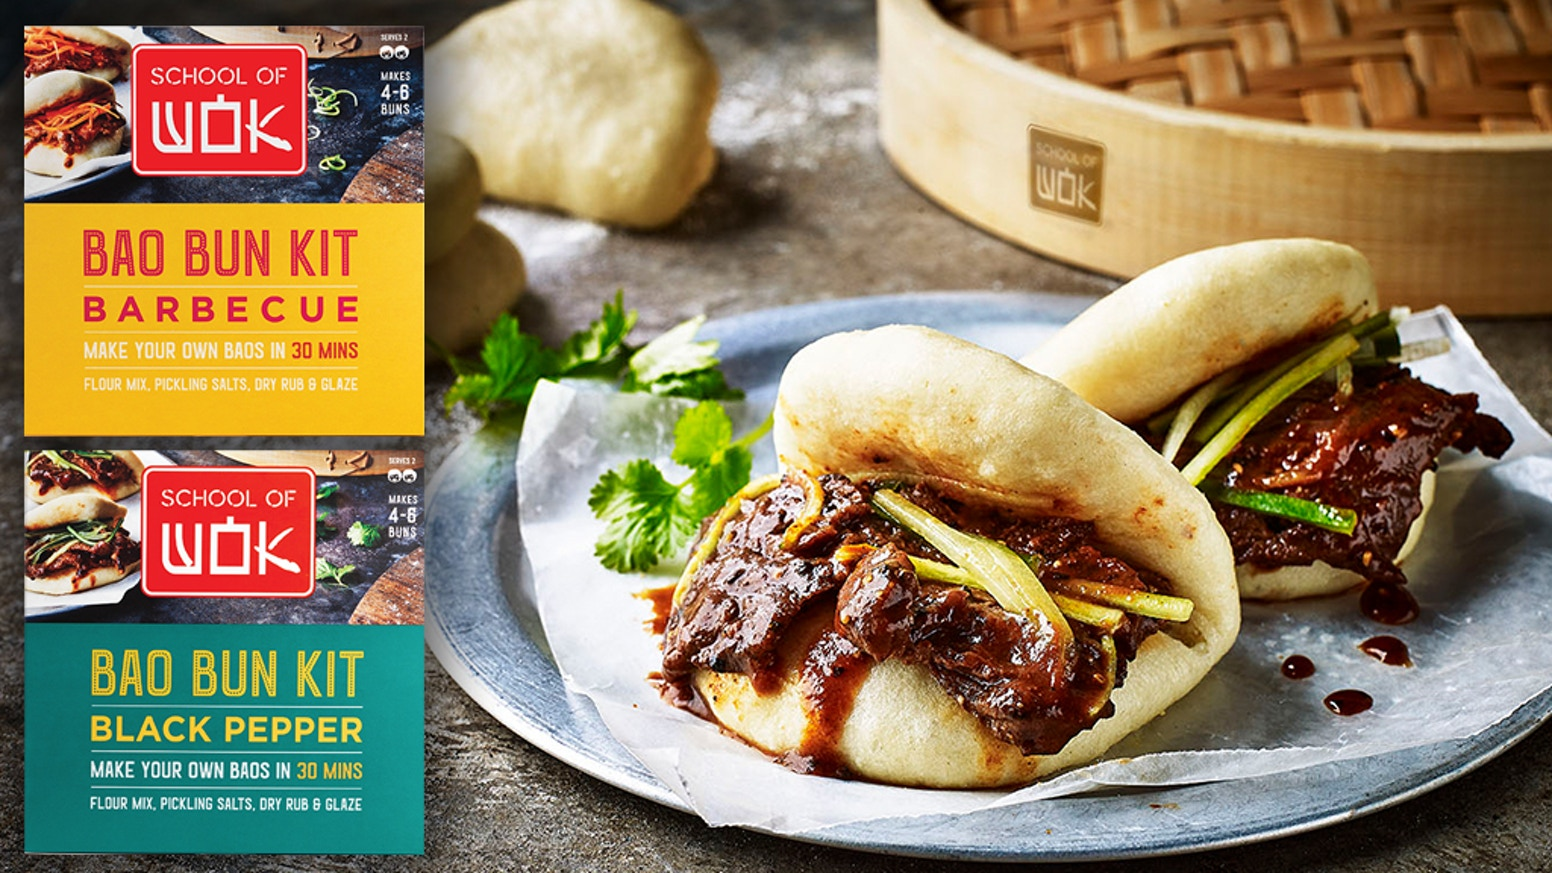 312 backers. Over £38,000 funded. Now we've got to get to work! Thanks to your funding, the award-winning Asian cookery school, School of Wok, are busy getting their DIY Bao Bun Kits into supermarkets across the world. It's A'Bao Time to go global!